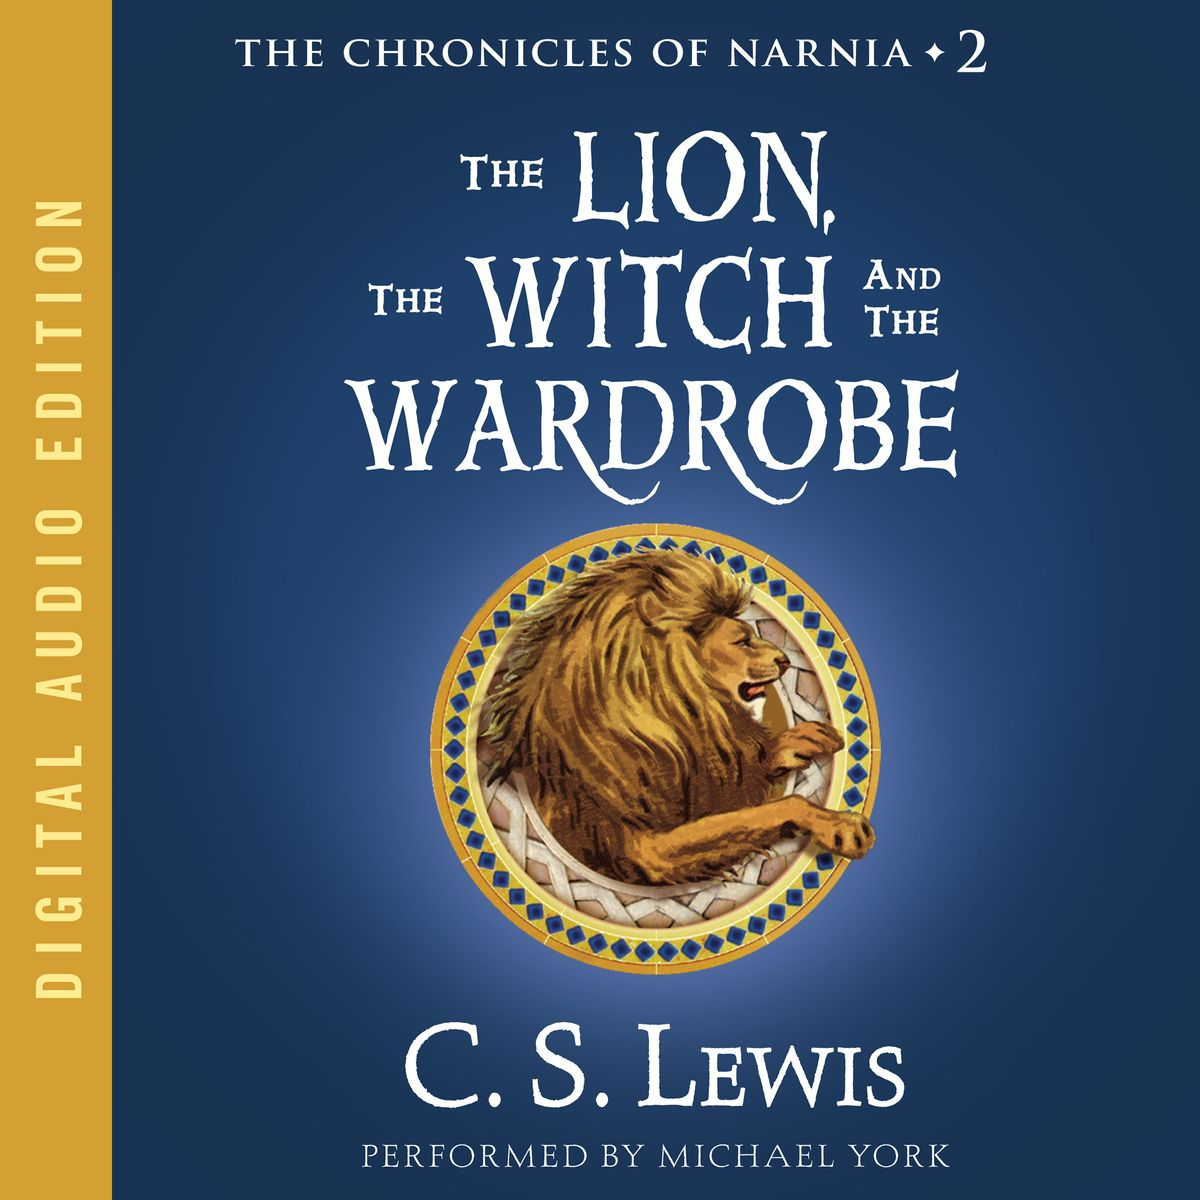 Chronicles of Narnia 1 - The Lion, The Witch and The Wardrobe BookZyfa